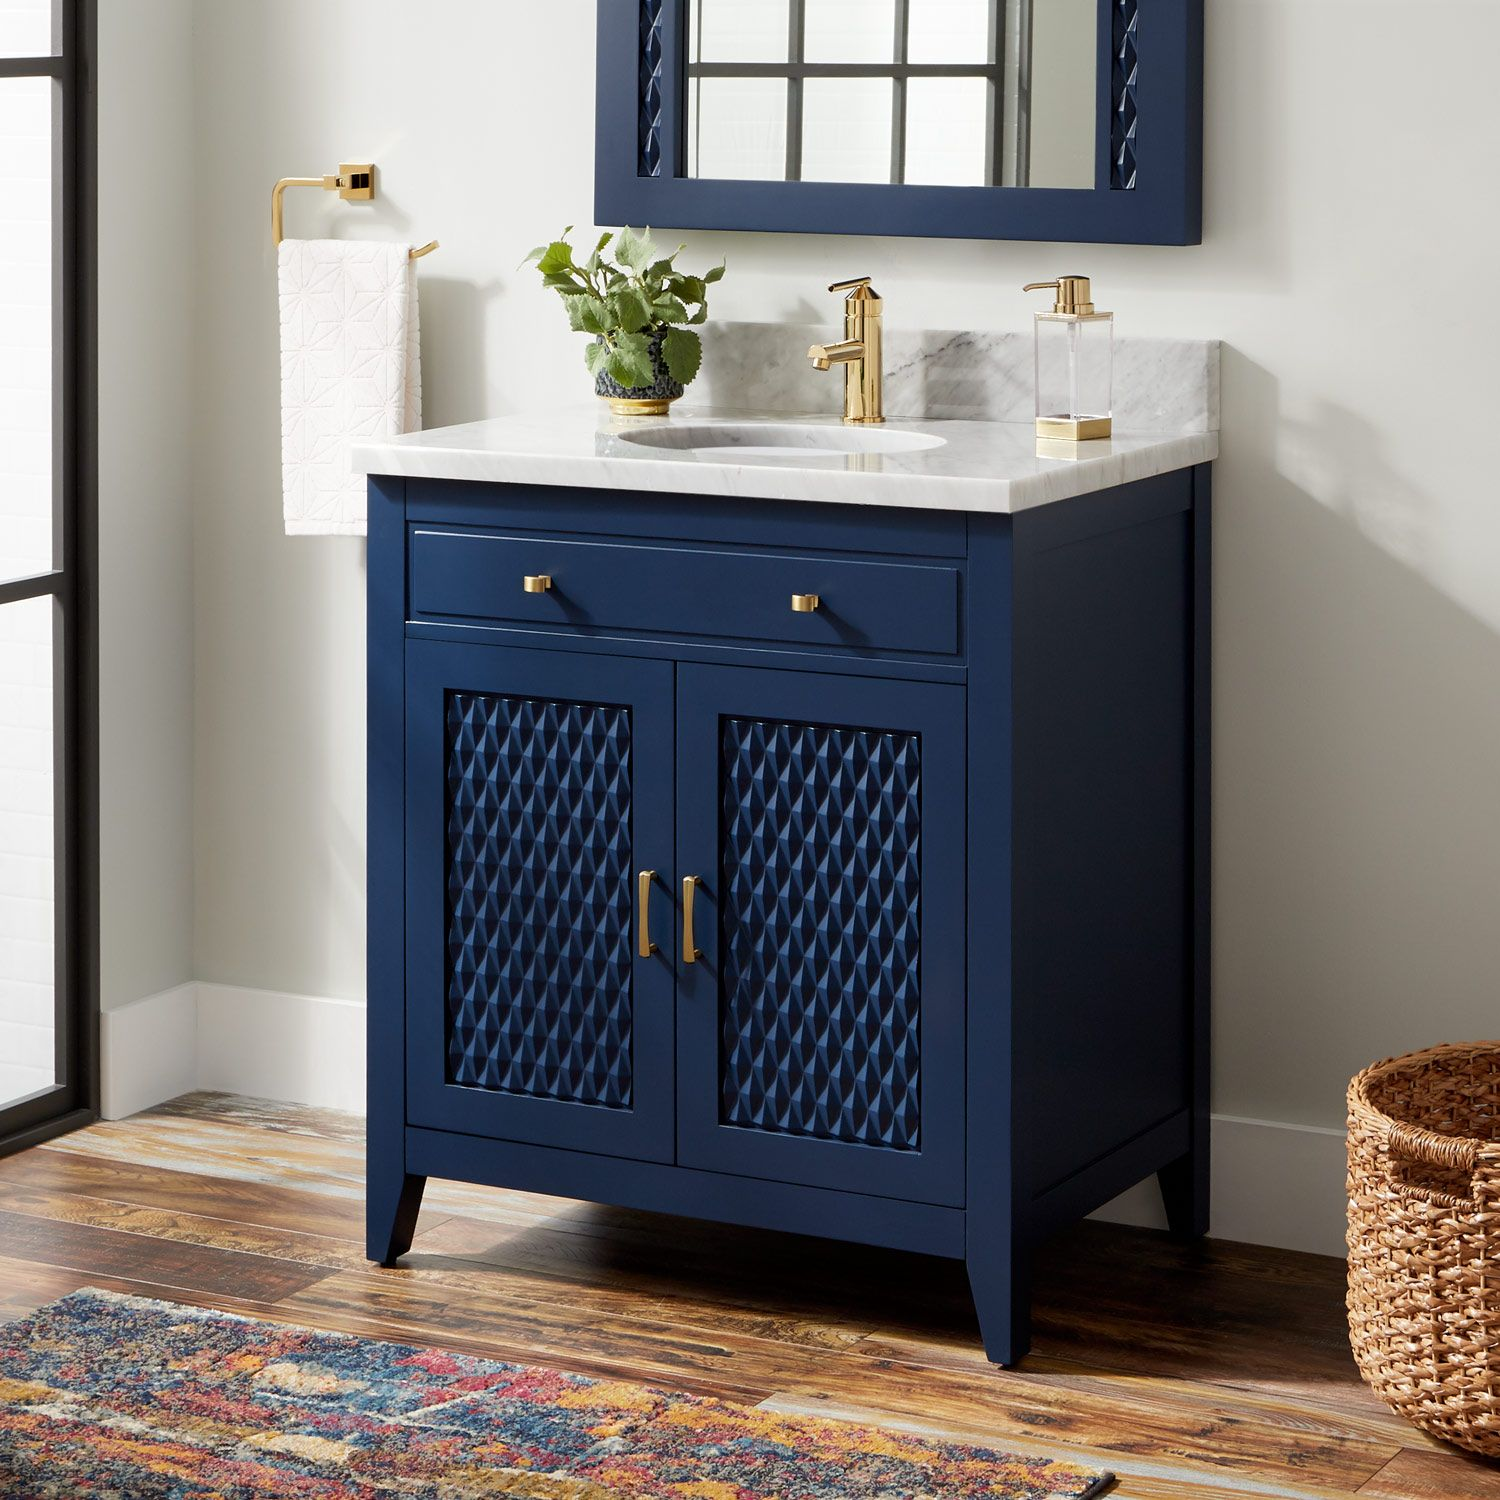 30 Thorton Mahogany Vanity For Undermount Sink In Bright Navy Blue Signature Hardware In 2020 Blue Bathroom Vanity Navy Blue Bathrooms Blue Vanity